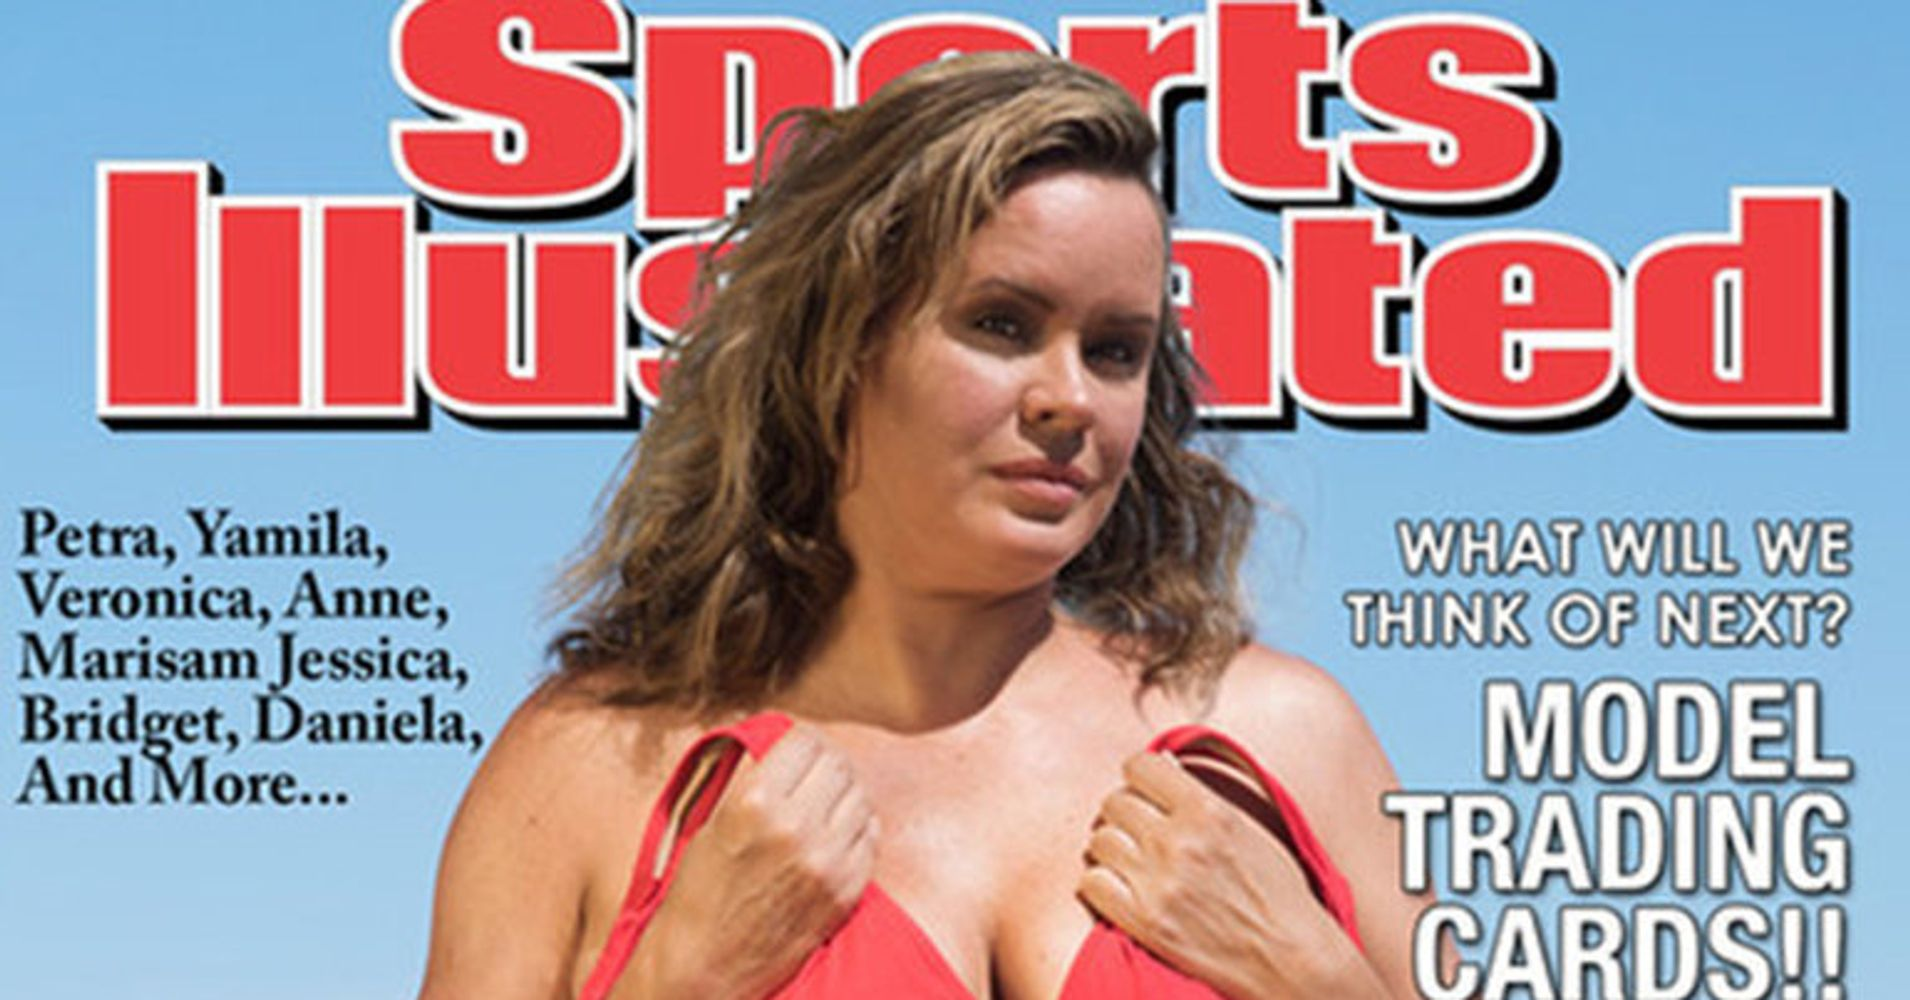 688f4f4e12 Women Recreate Sports Illustrated Swimsuit Covers In Powerful Photo Shoot